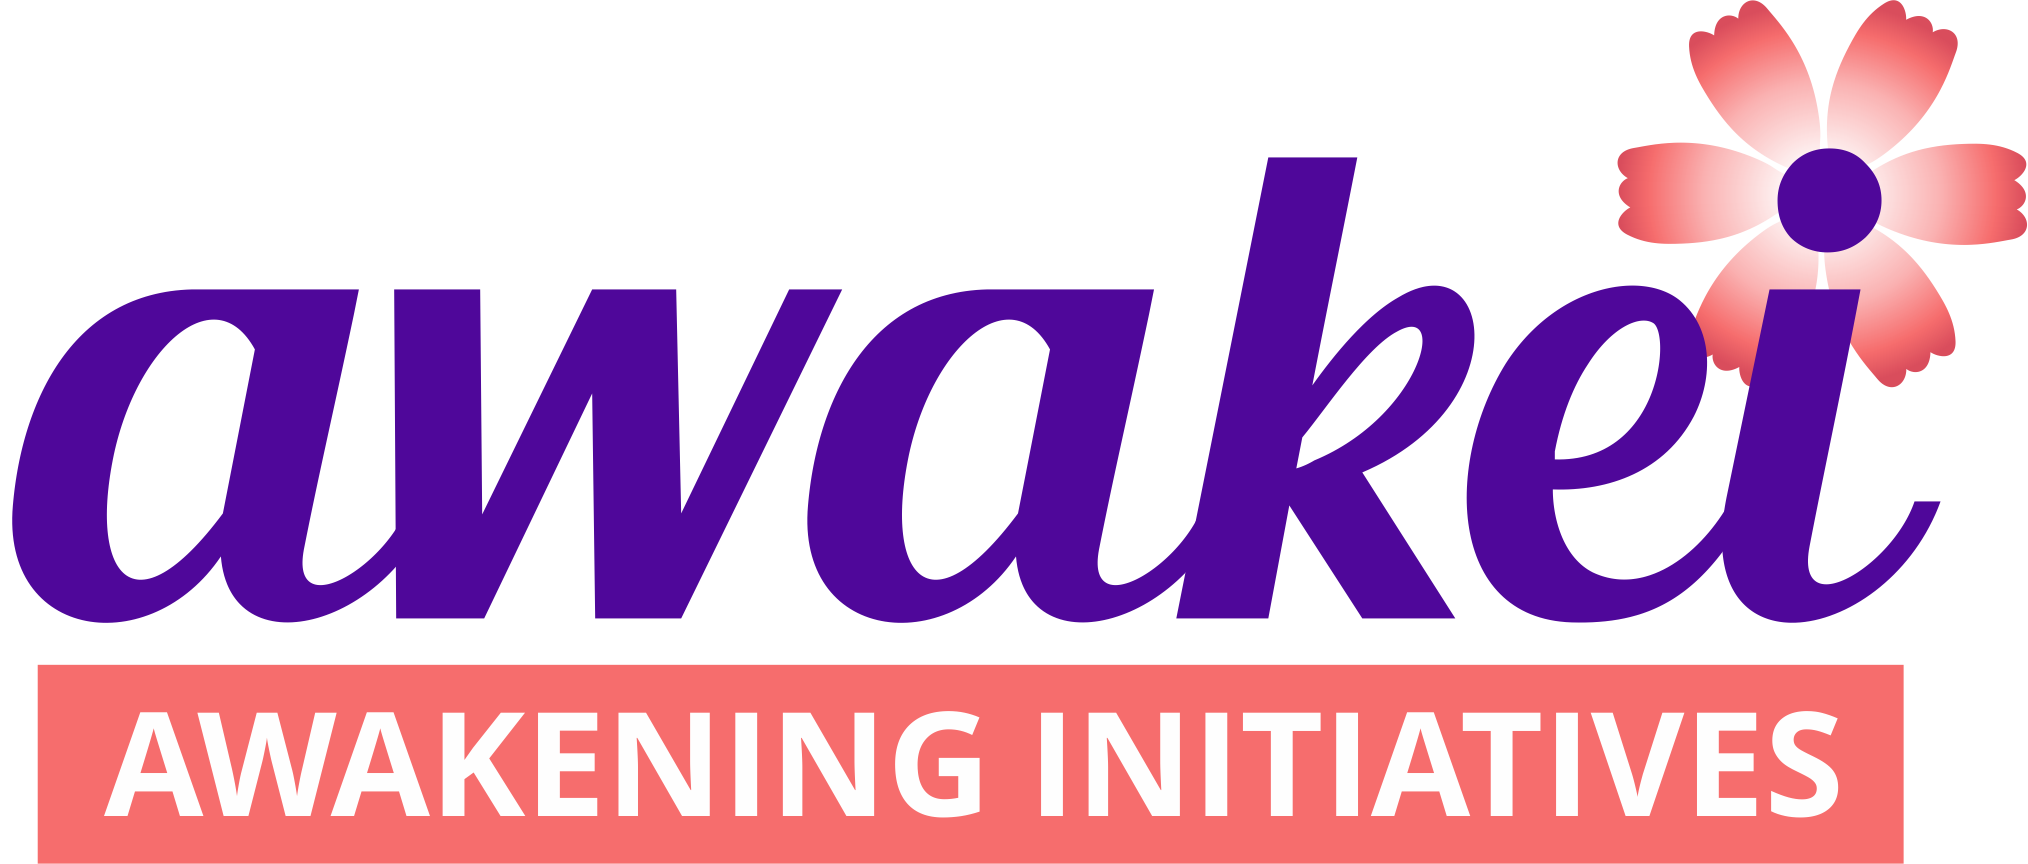 Awakening Initiatives